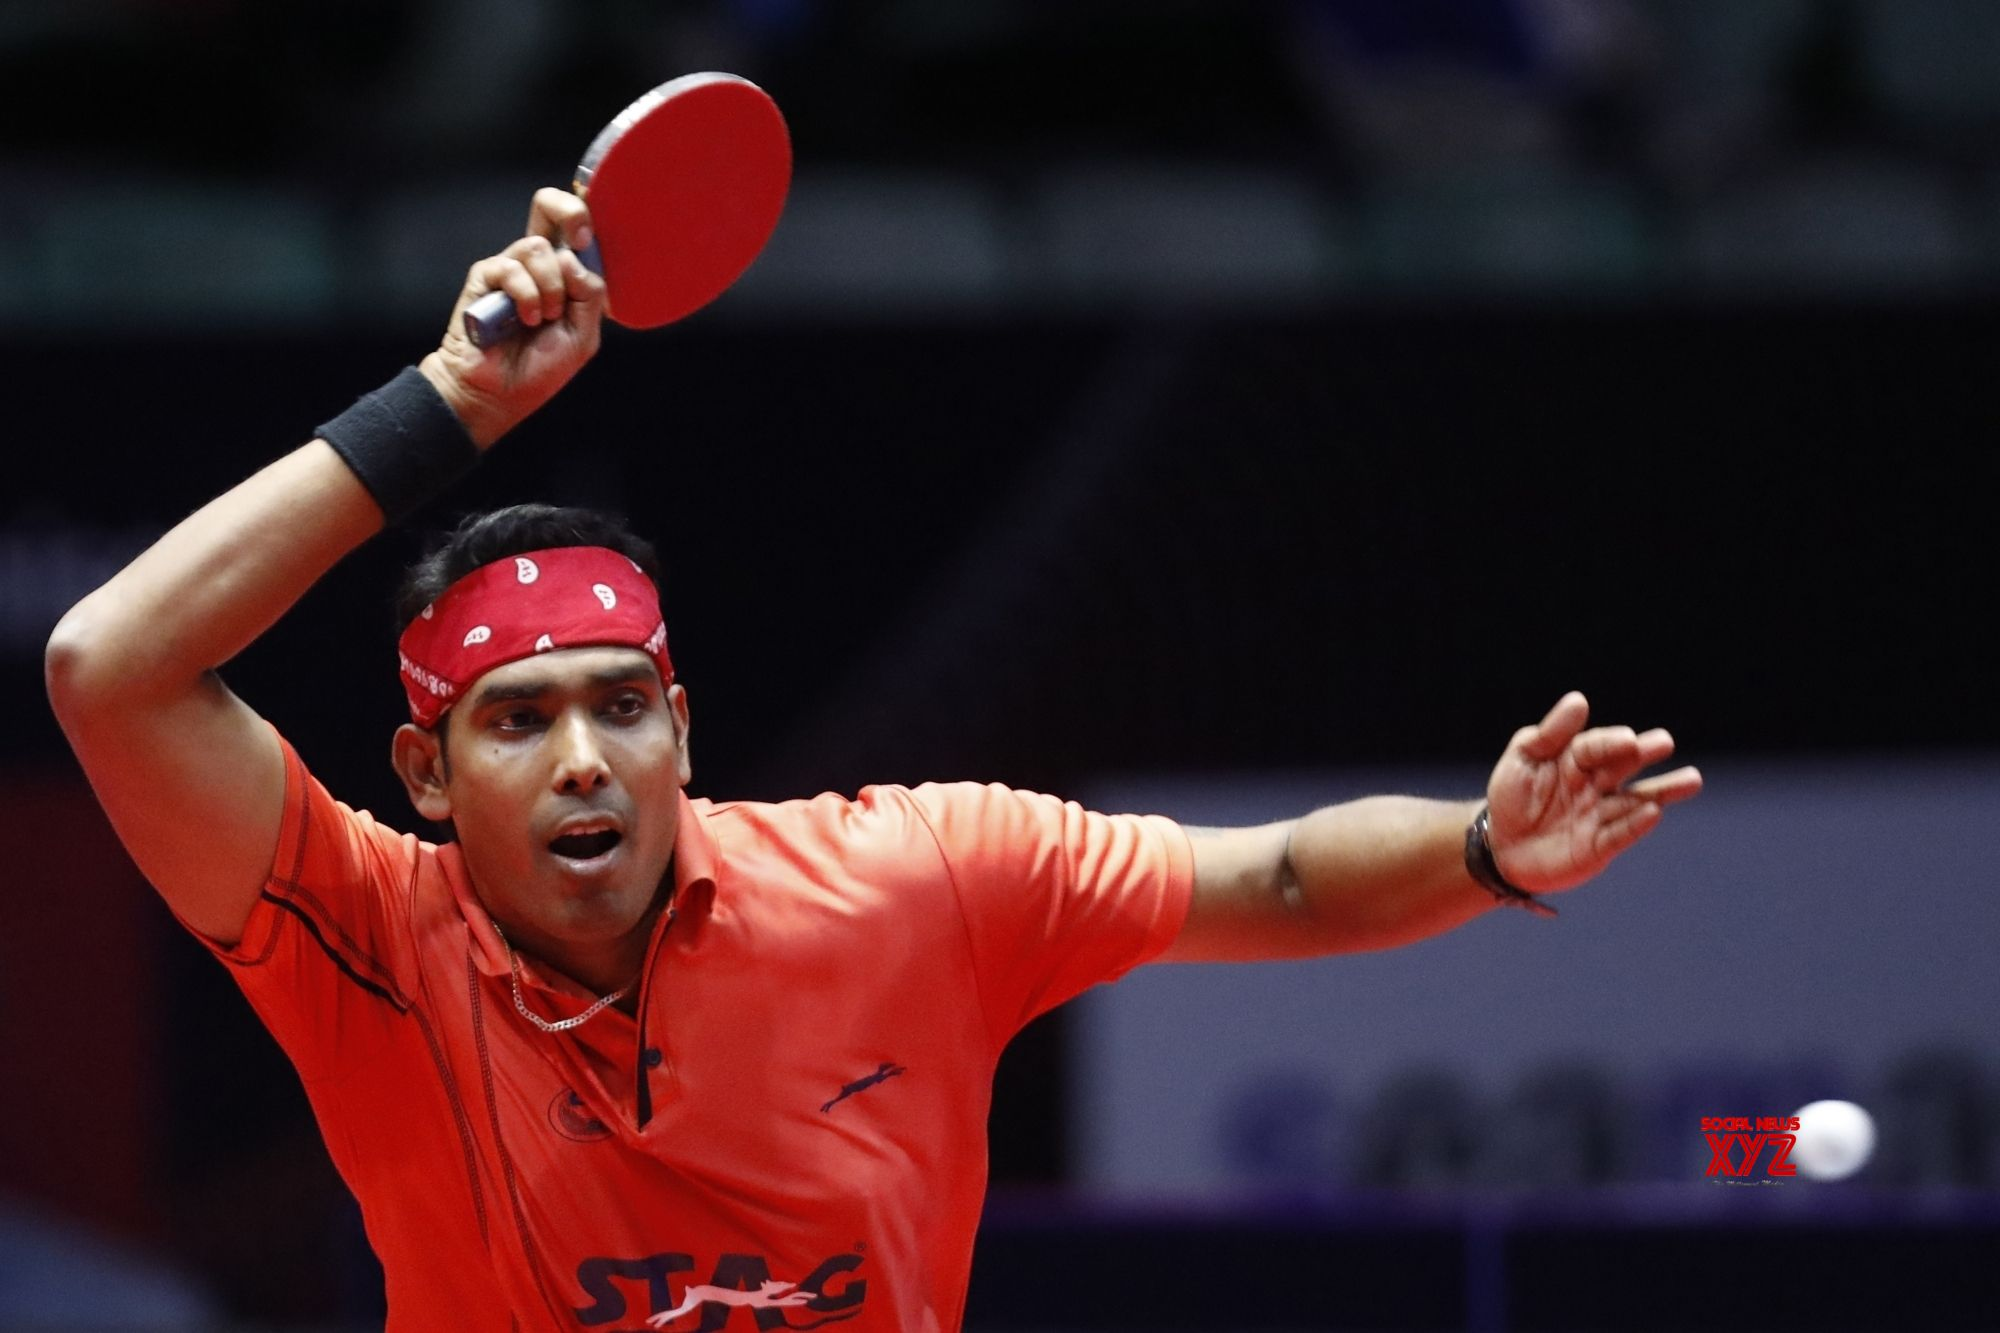 Second season of Ultimate Table Tennis starts Thursday